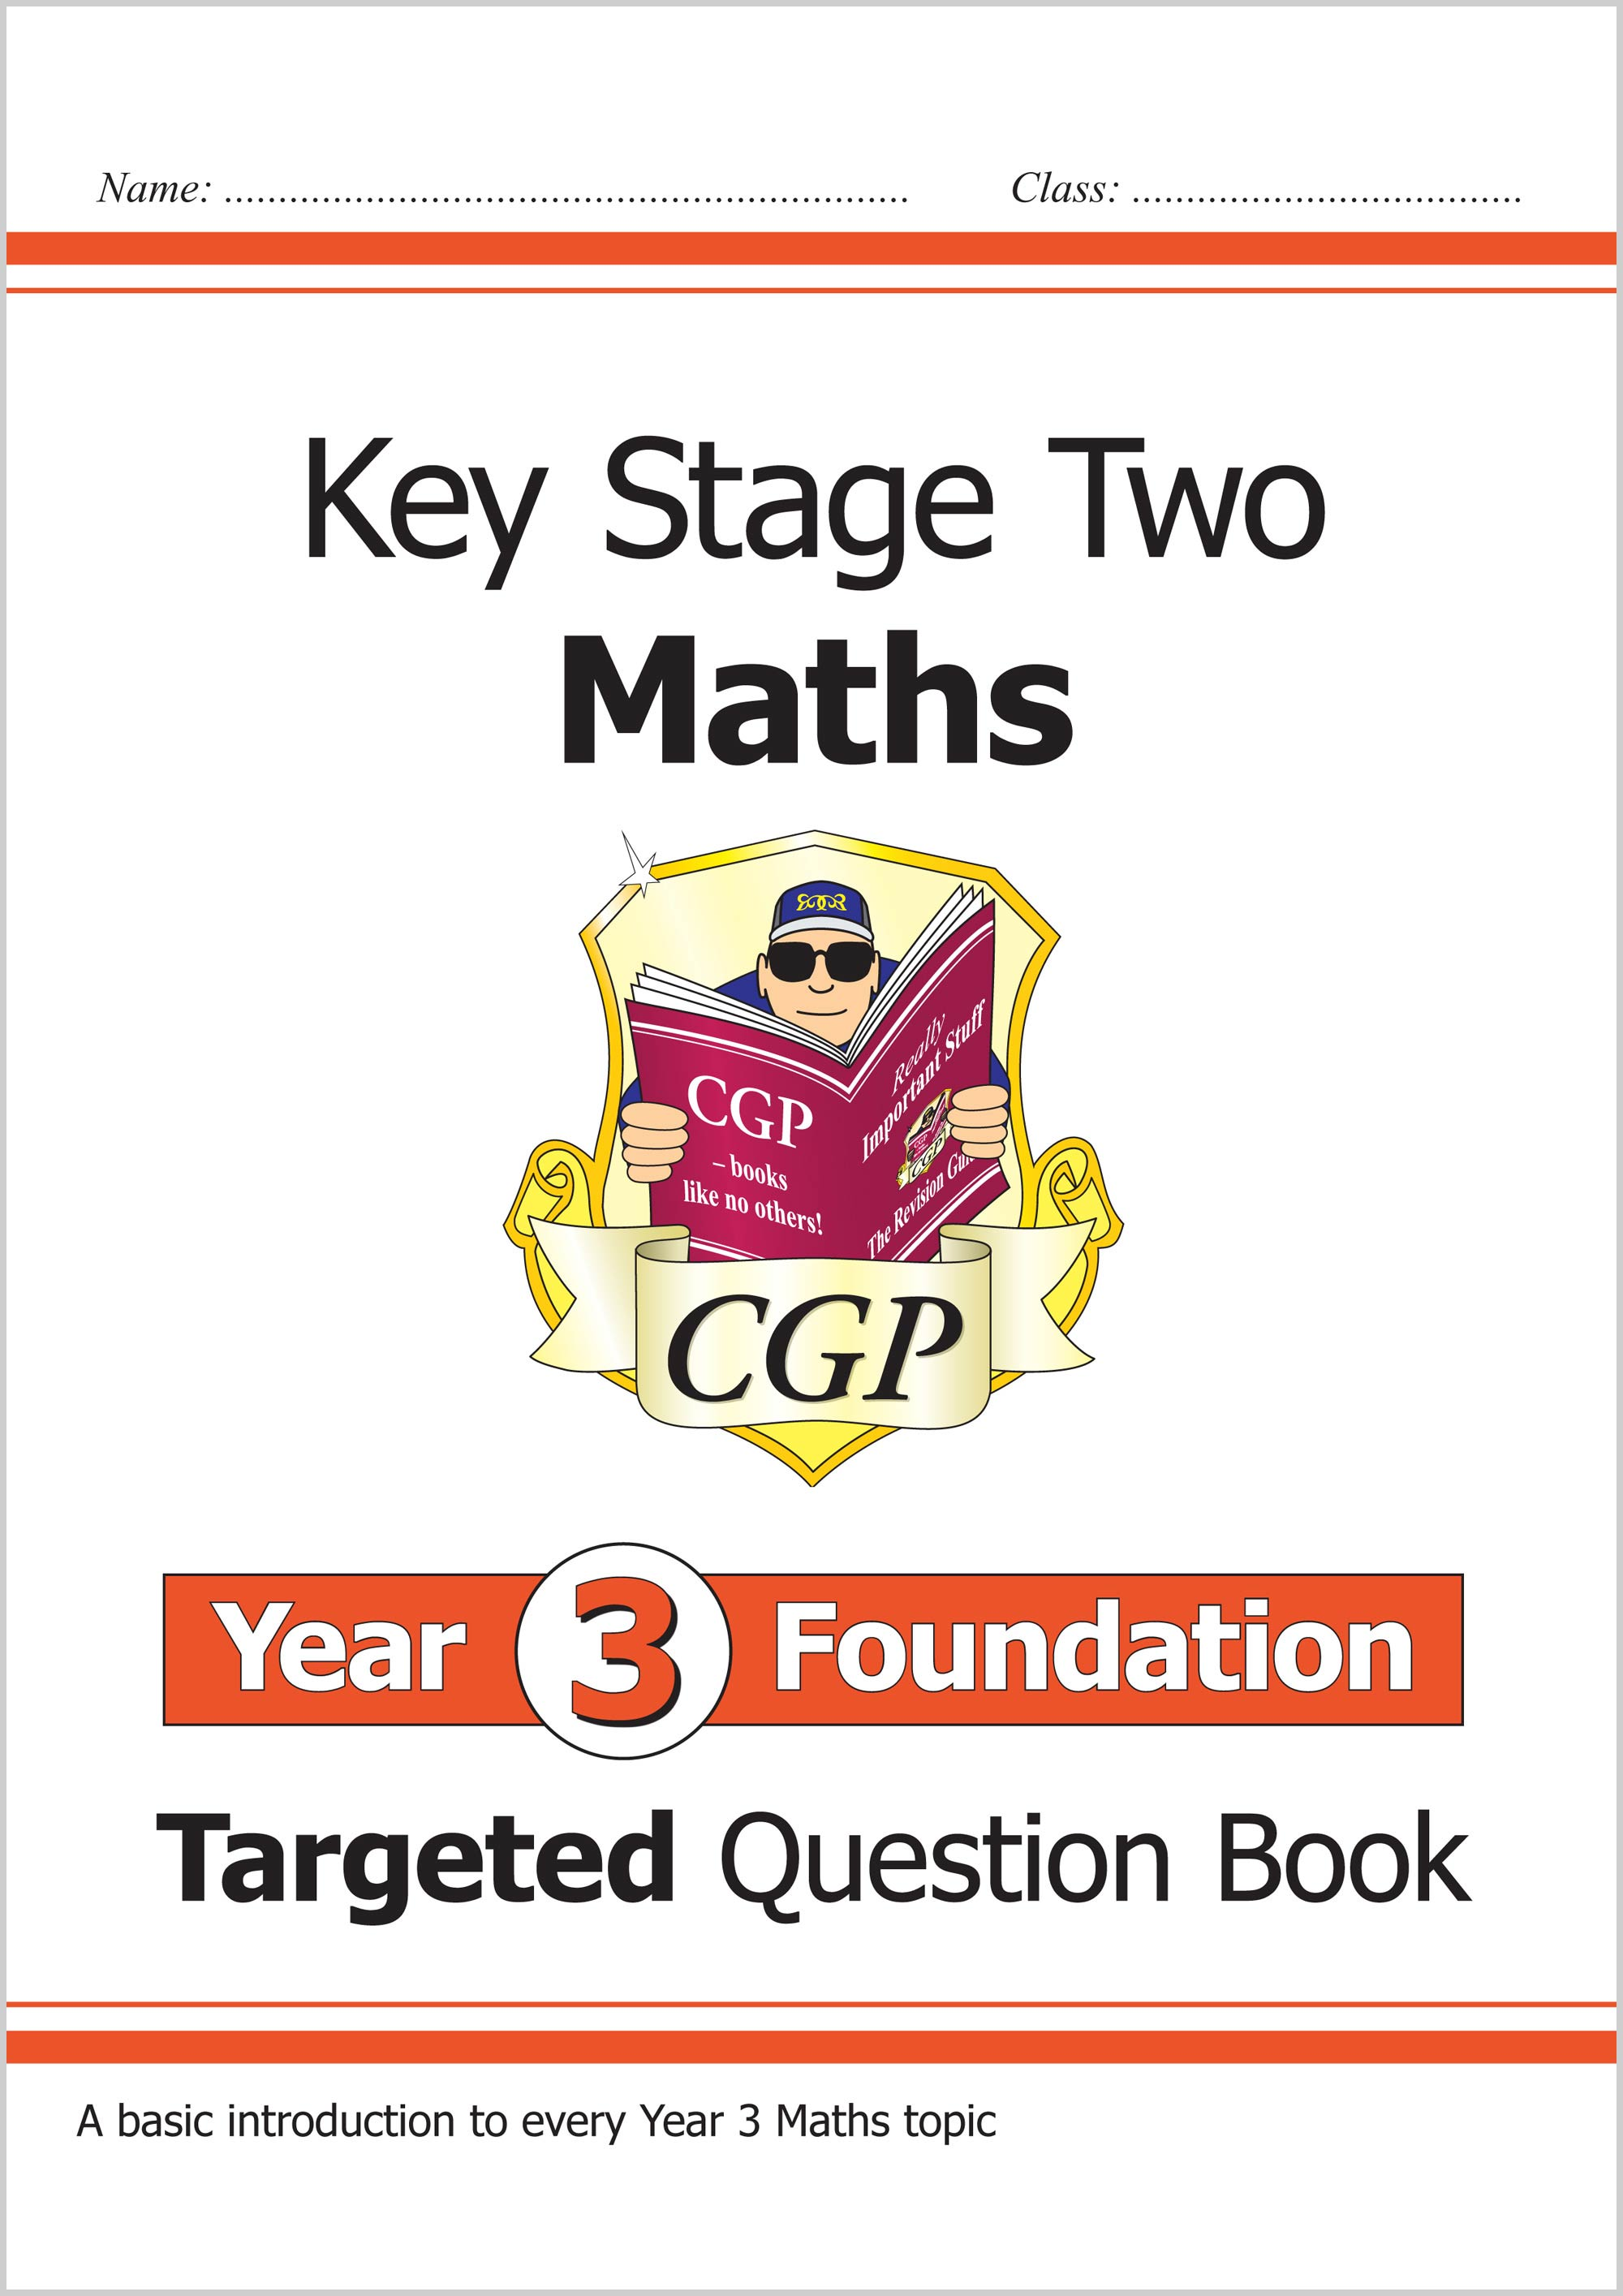 M3FQ21 - New KS2 Maths Targeted Question Book: Year 3 Foundation